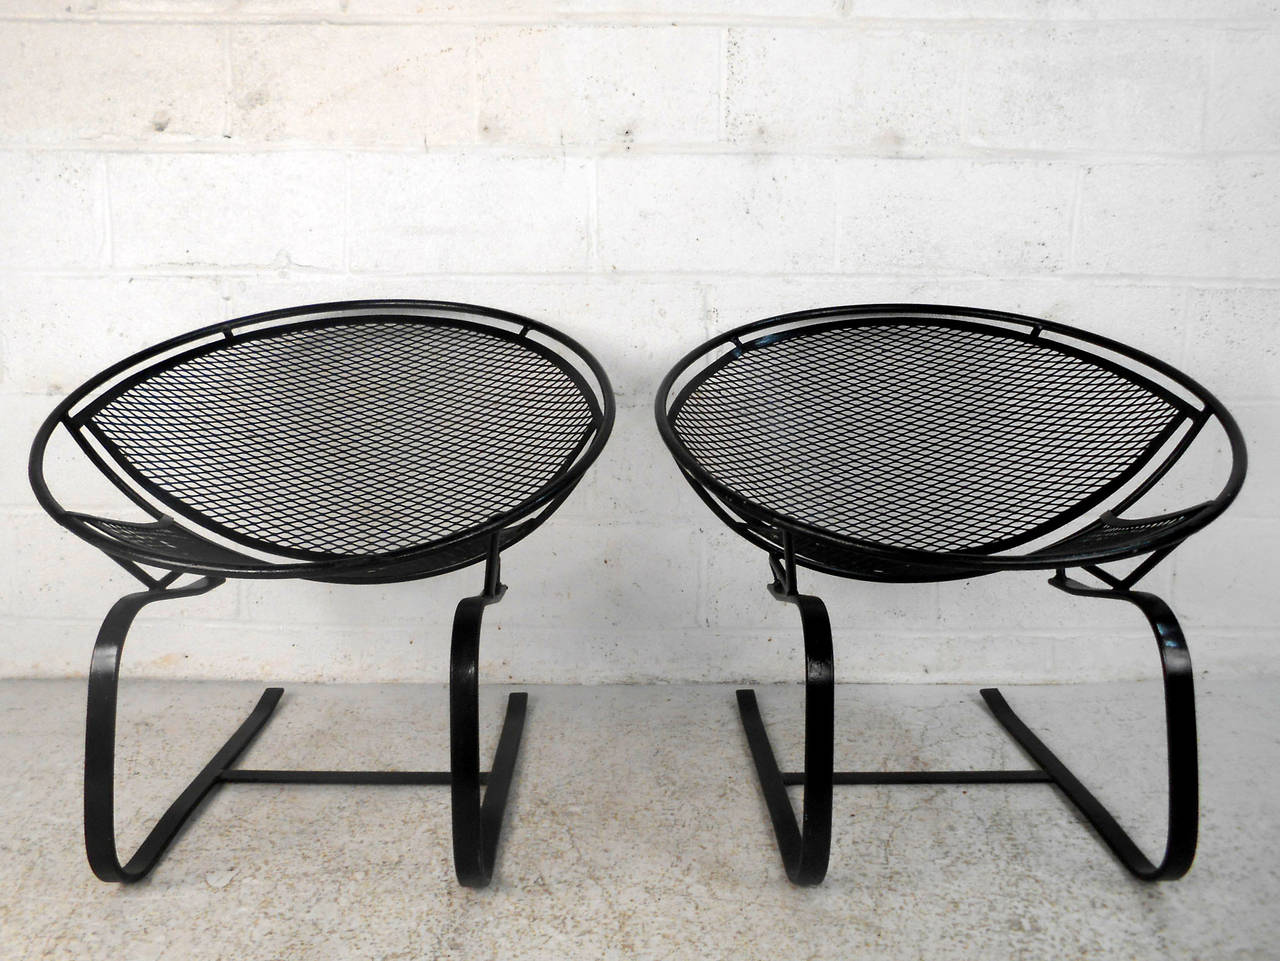 Mid Century Patio Chairs Pair Mid Century Modern Iron Cantilever Patio Chairs By